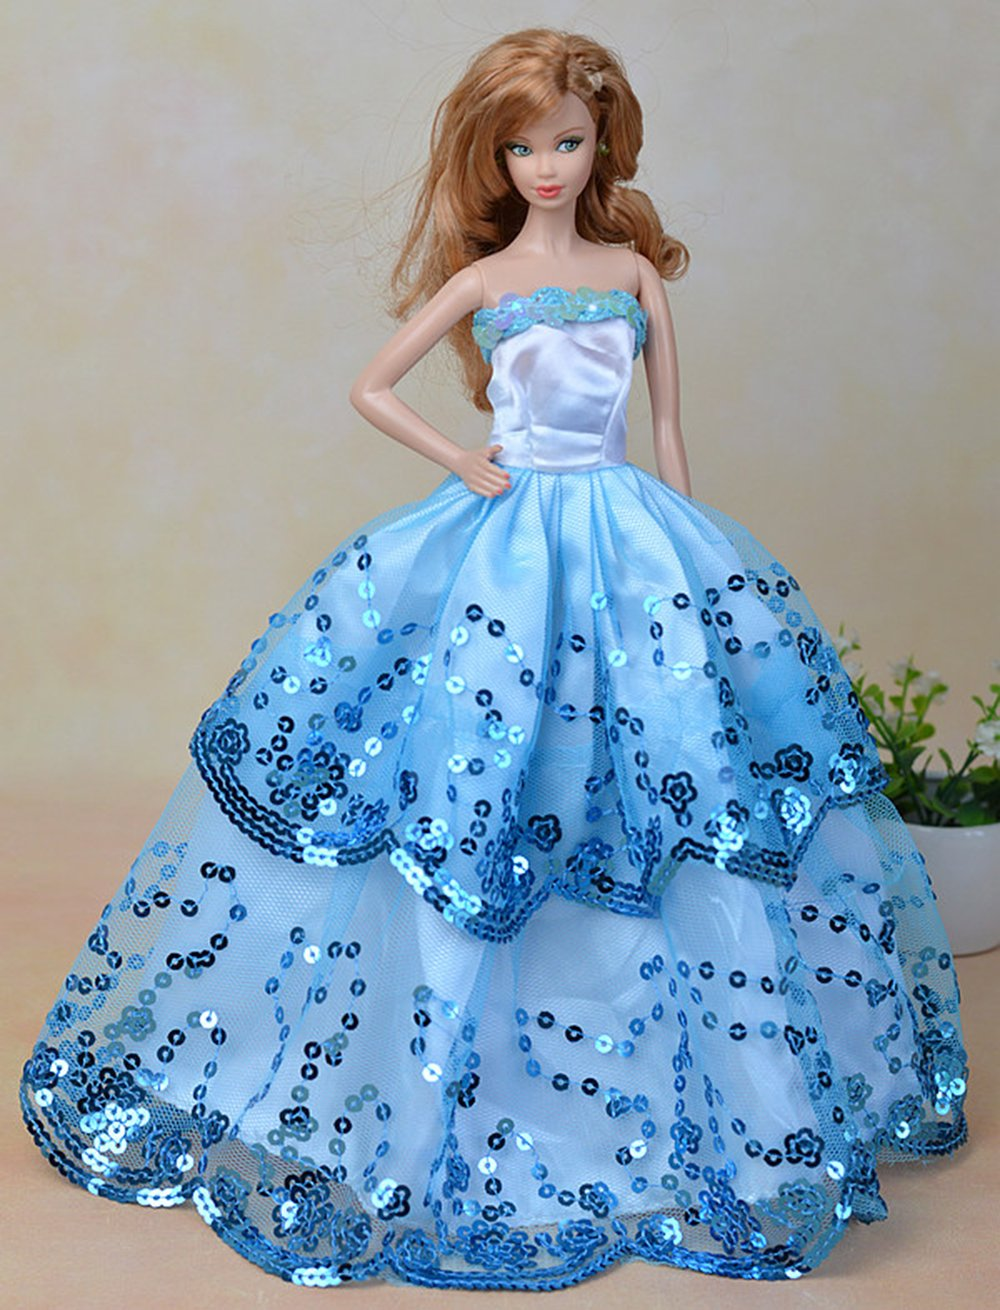 Blue Ball Gown with Light Blue Sequined Lace Details